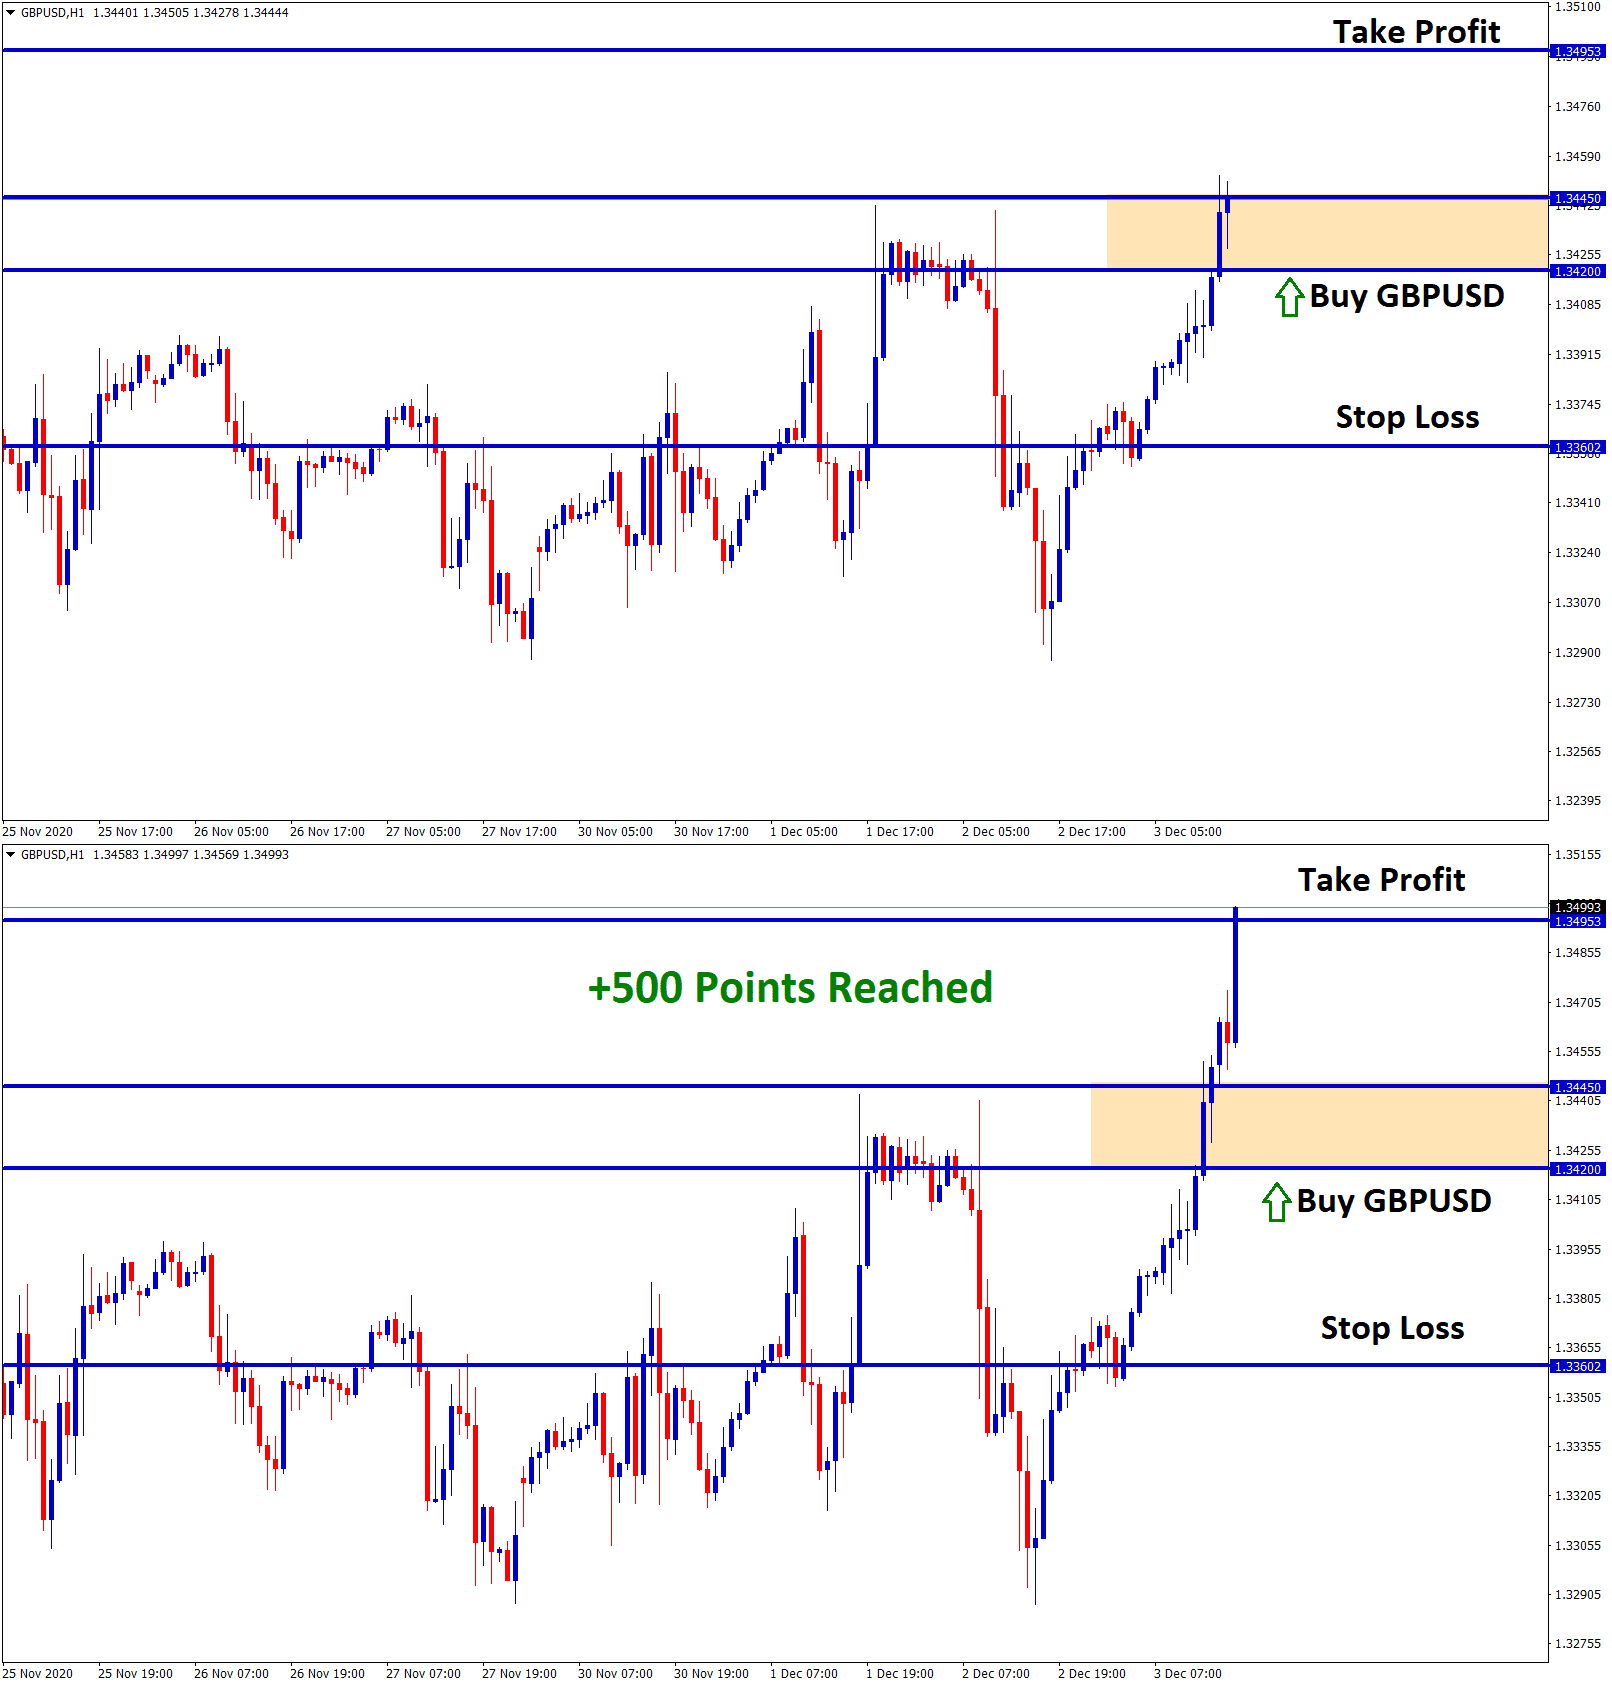 gbpusd reached 500 points profit in buy